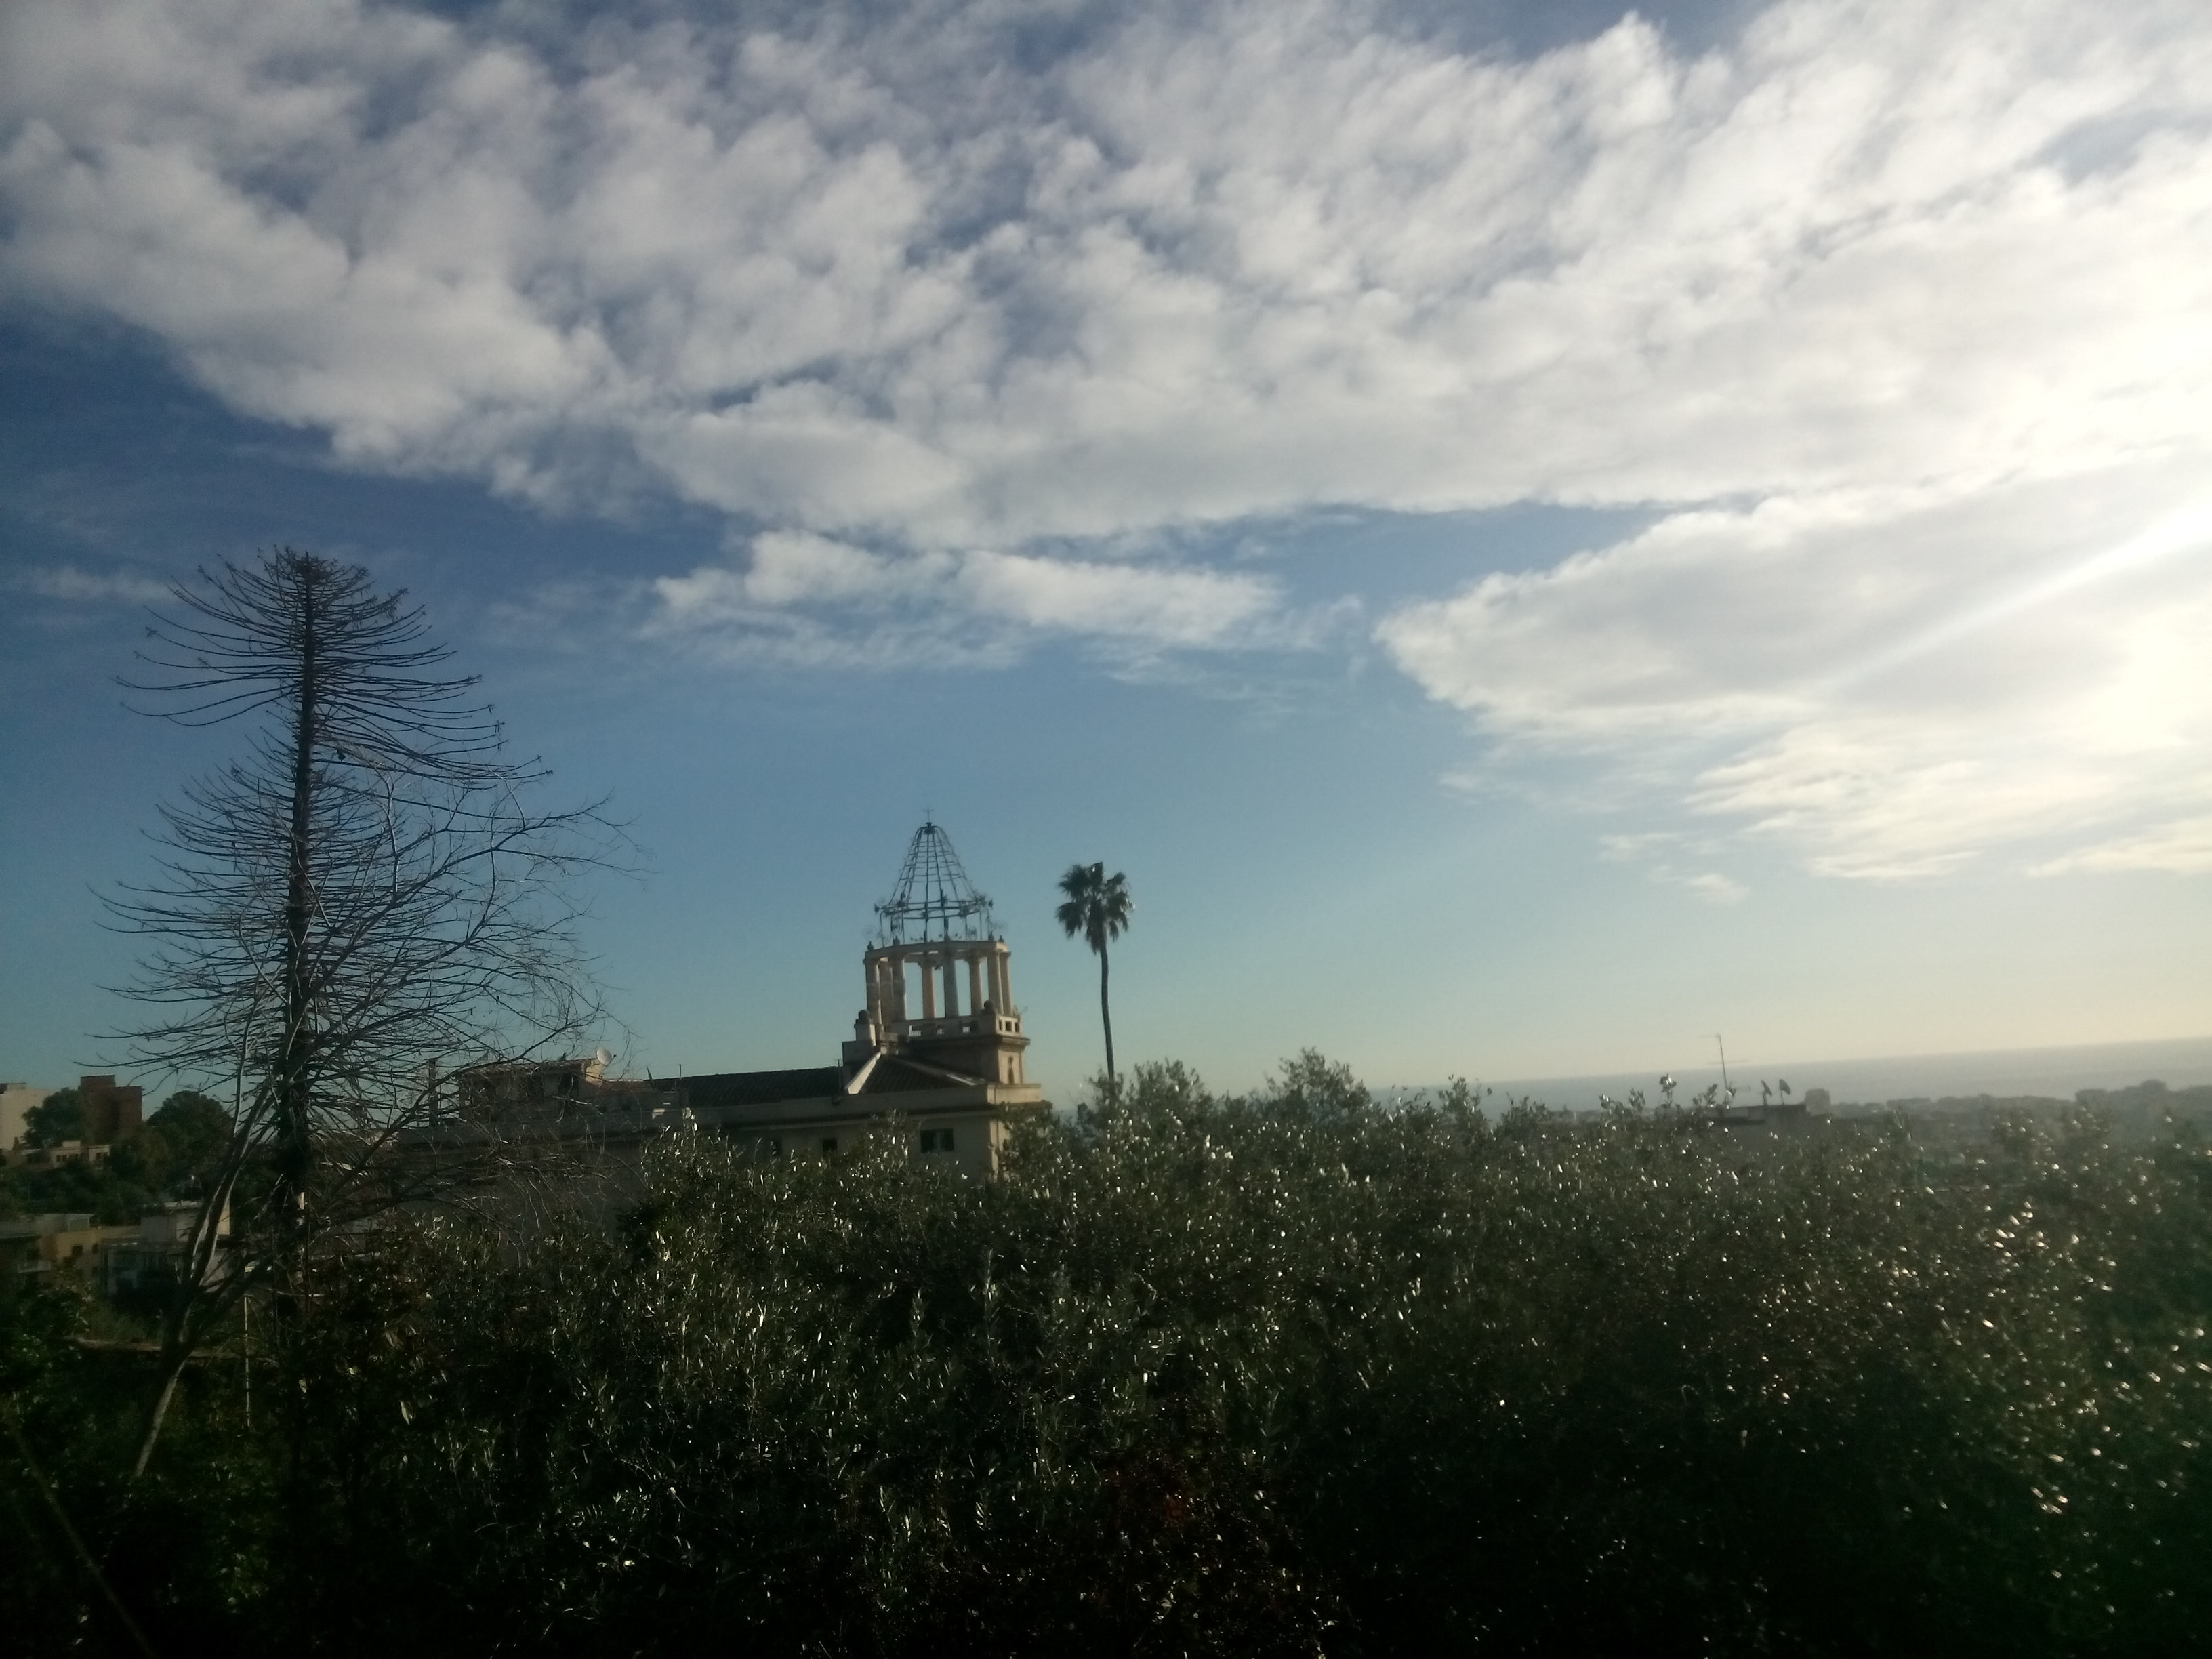 Blue sky with white clouds; green trees with a church and a palm tree sticking up in the center